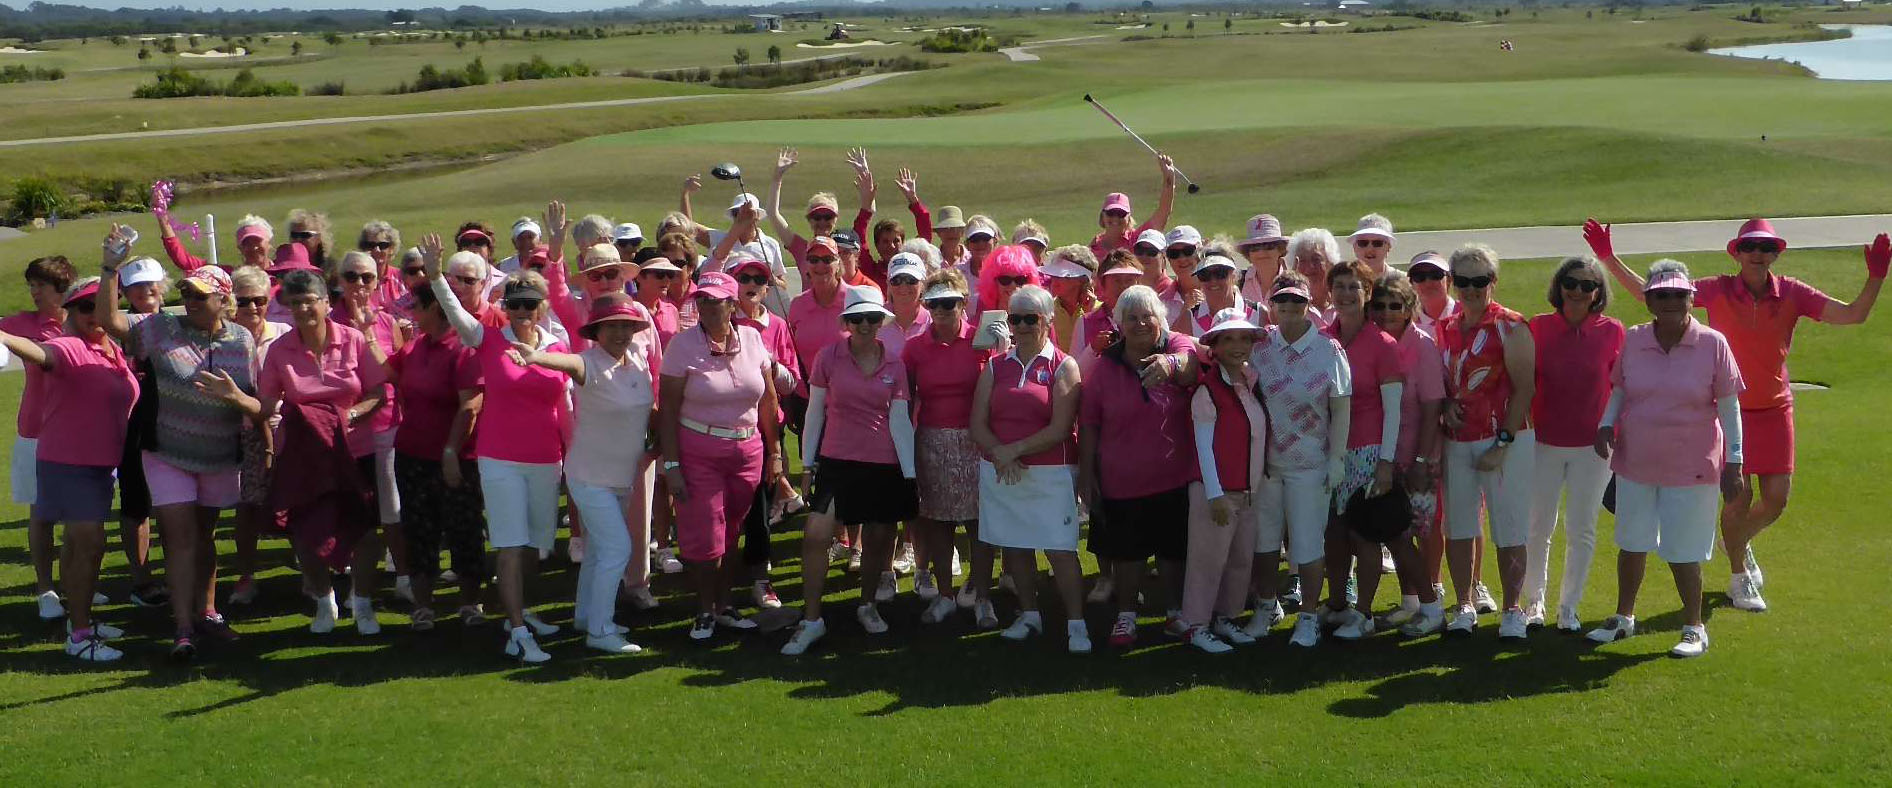 MAROOCHY RIVER LADIES GOLF